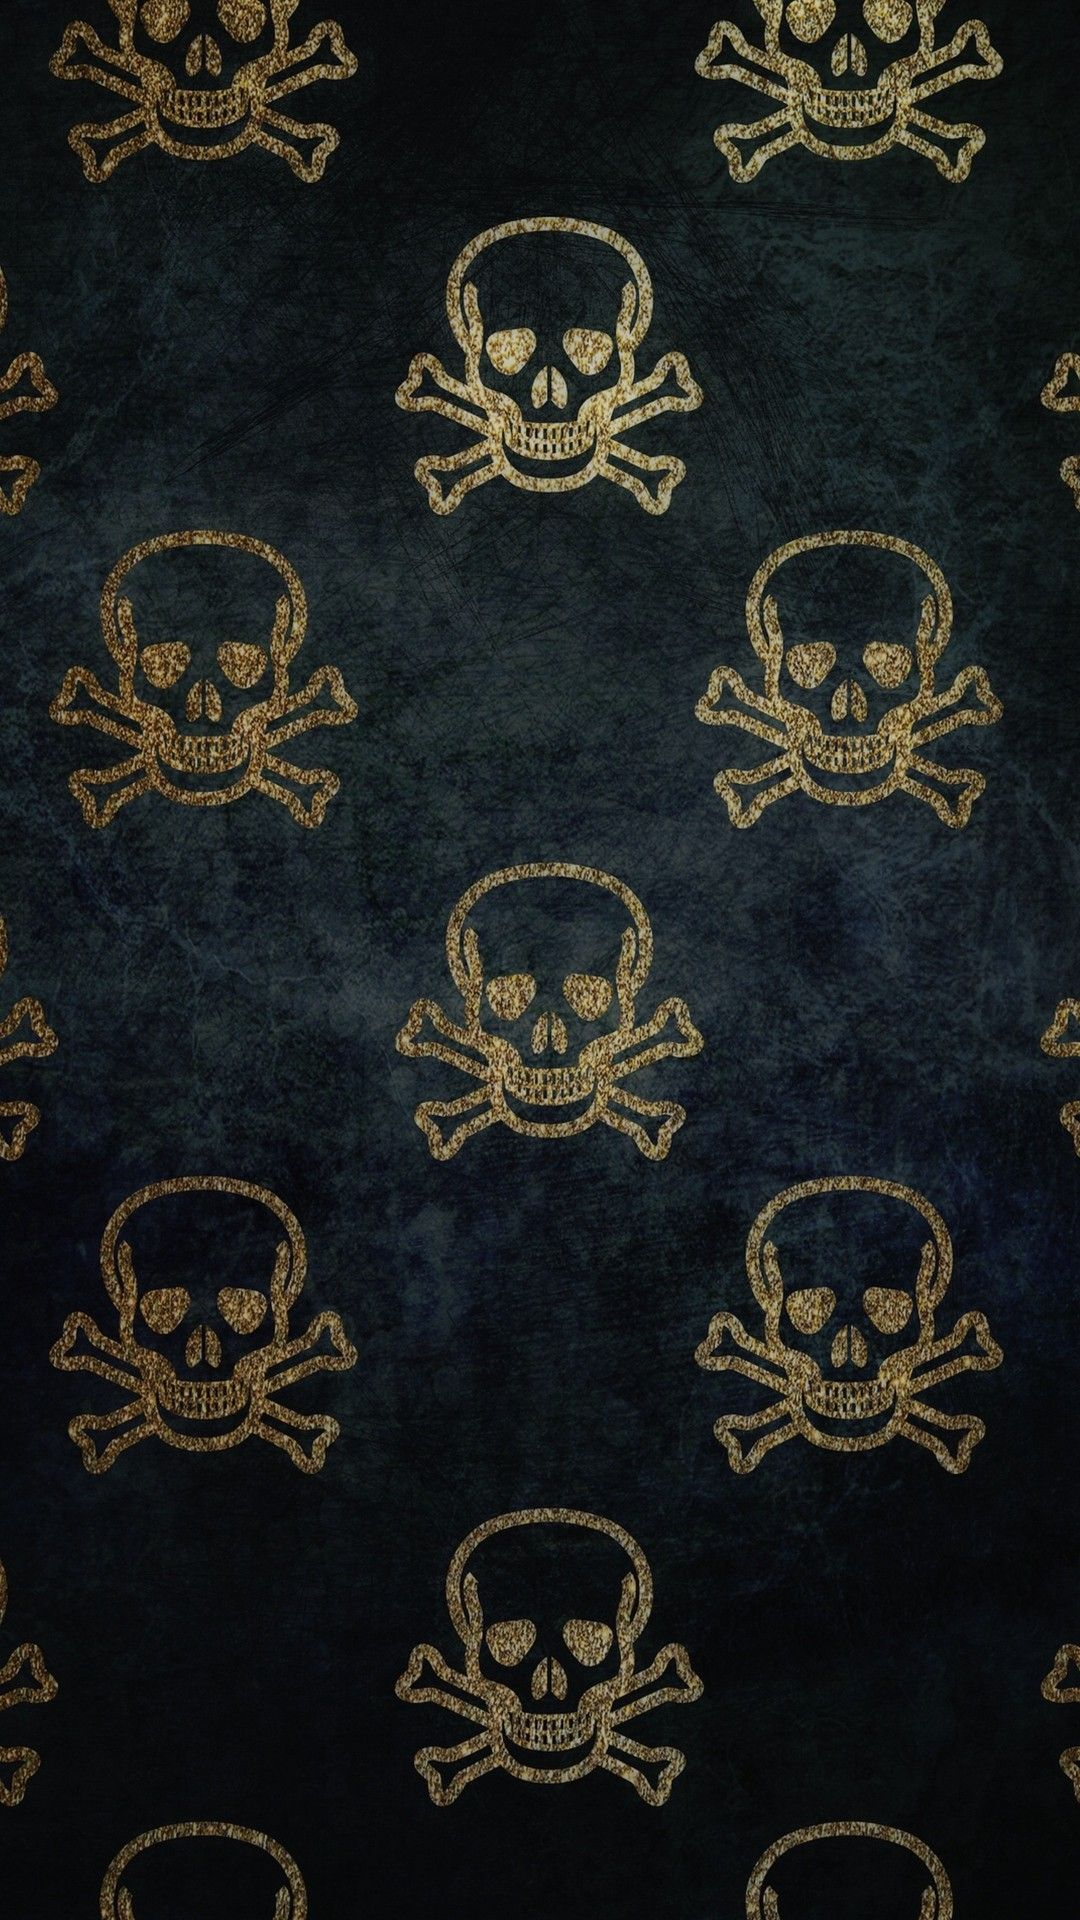 Free Download Pirates Of The Carribean Wallpaper Disney In